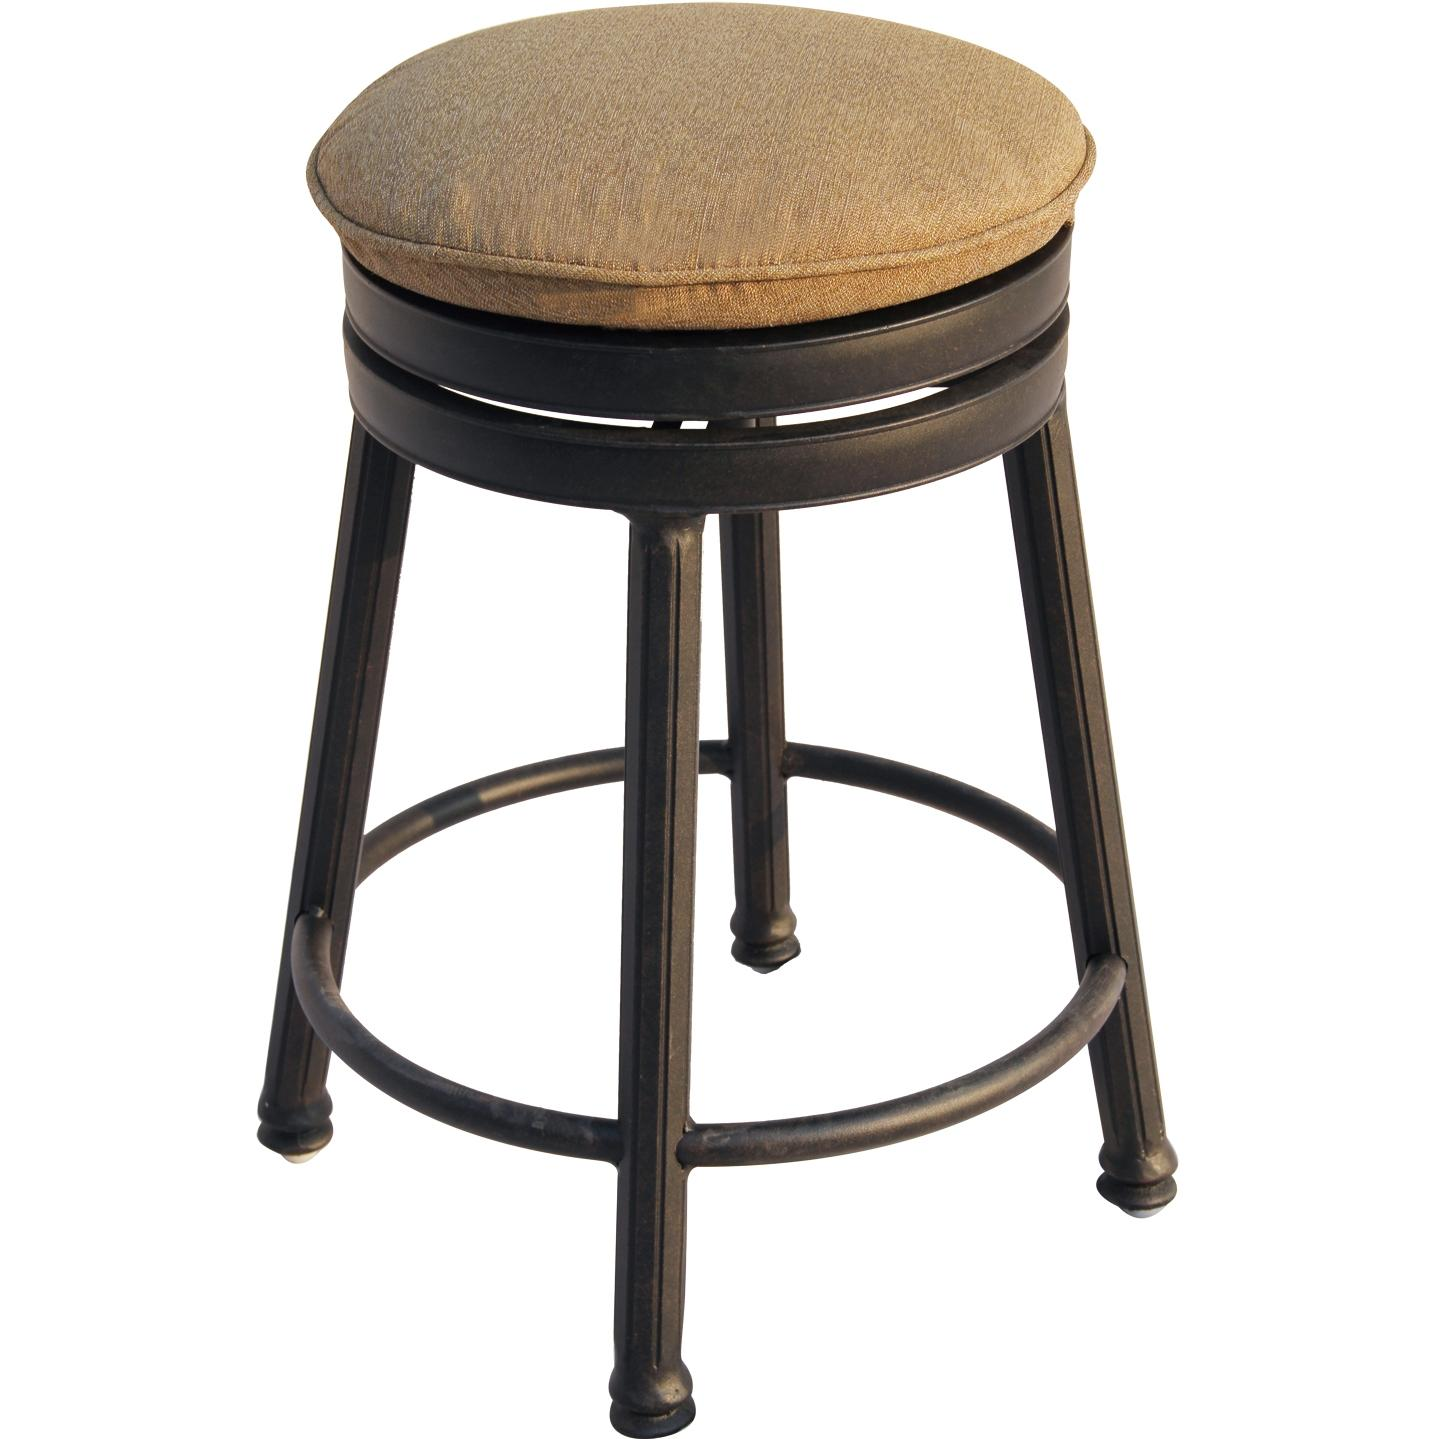 Darlee Cast Aluminum Outdoor Patio Backless Counter Height Round Swivel Bar Stool With Cushion - Antique Bronze